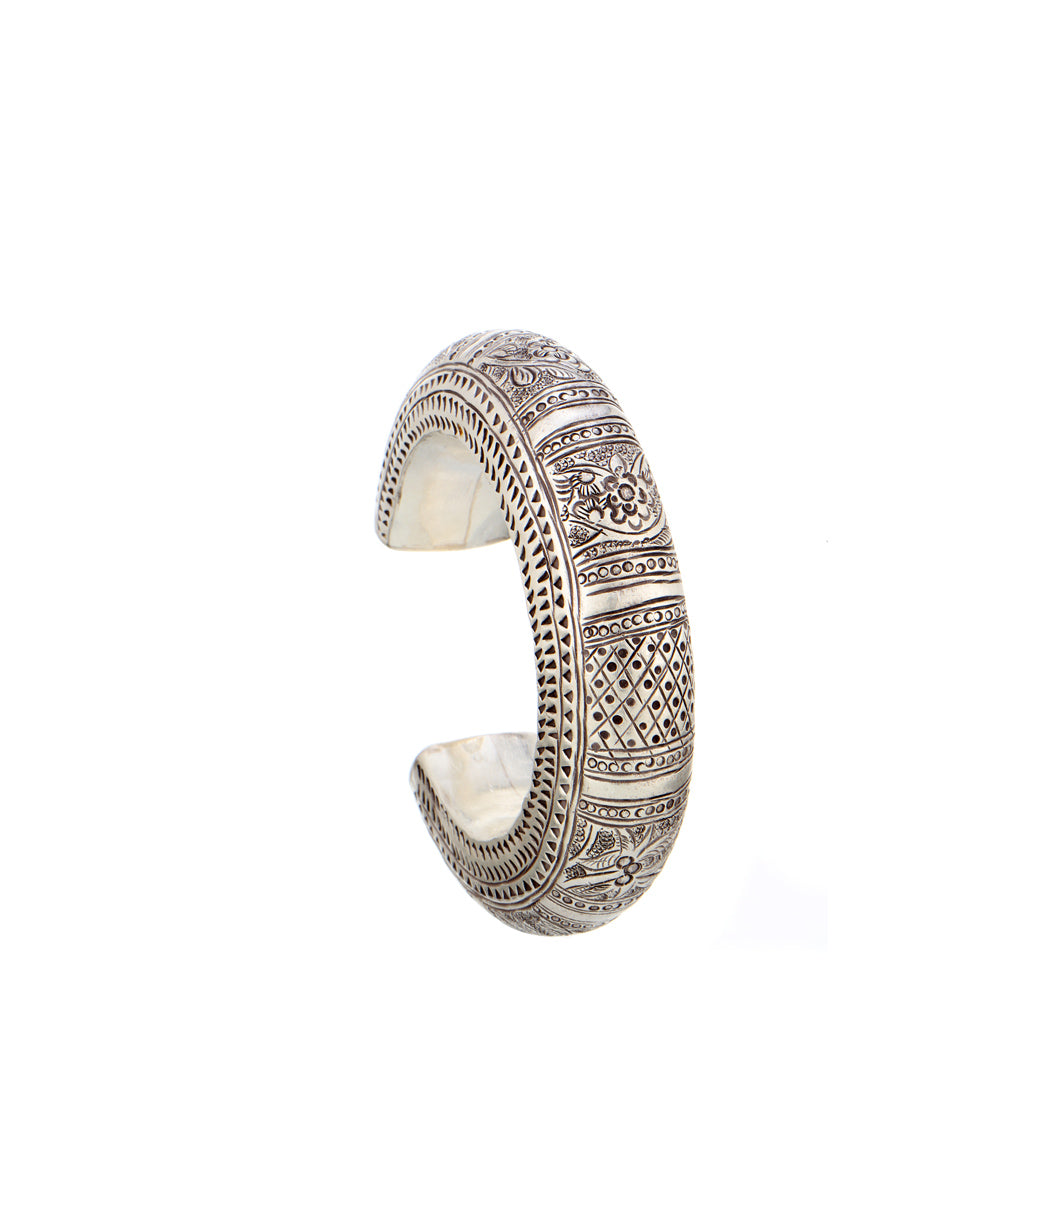 Geometric Antique Cuff